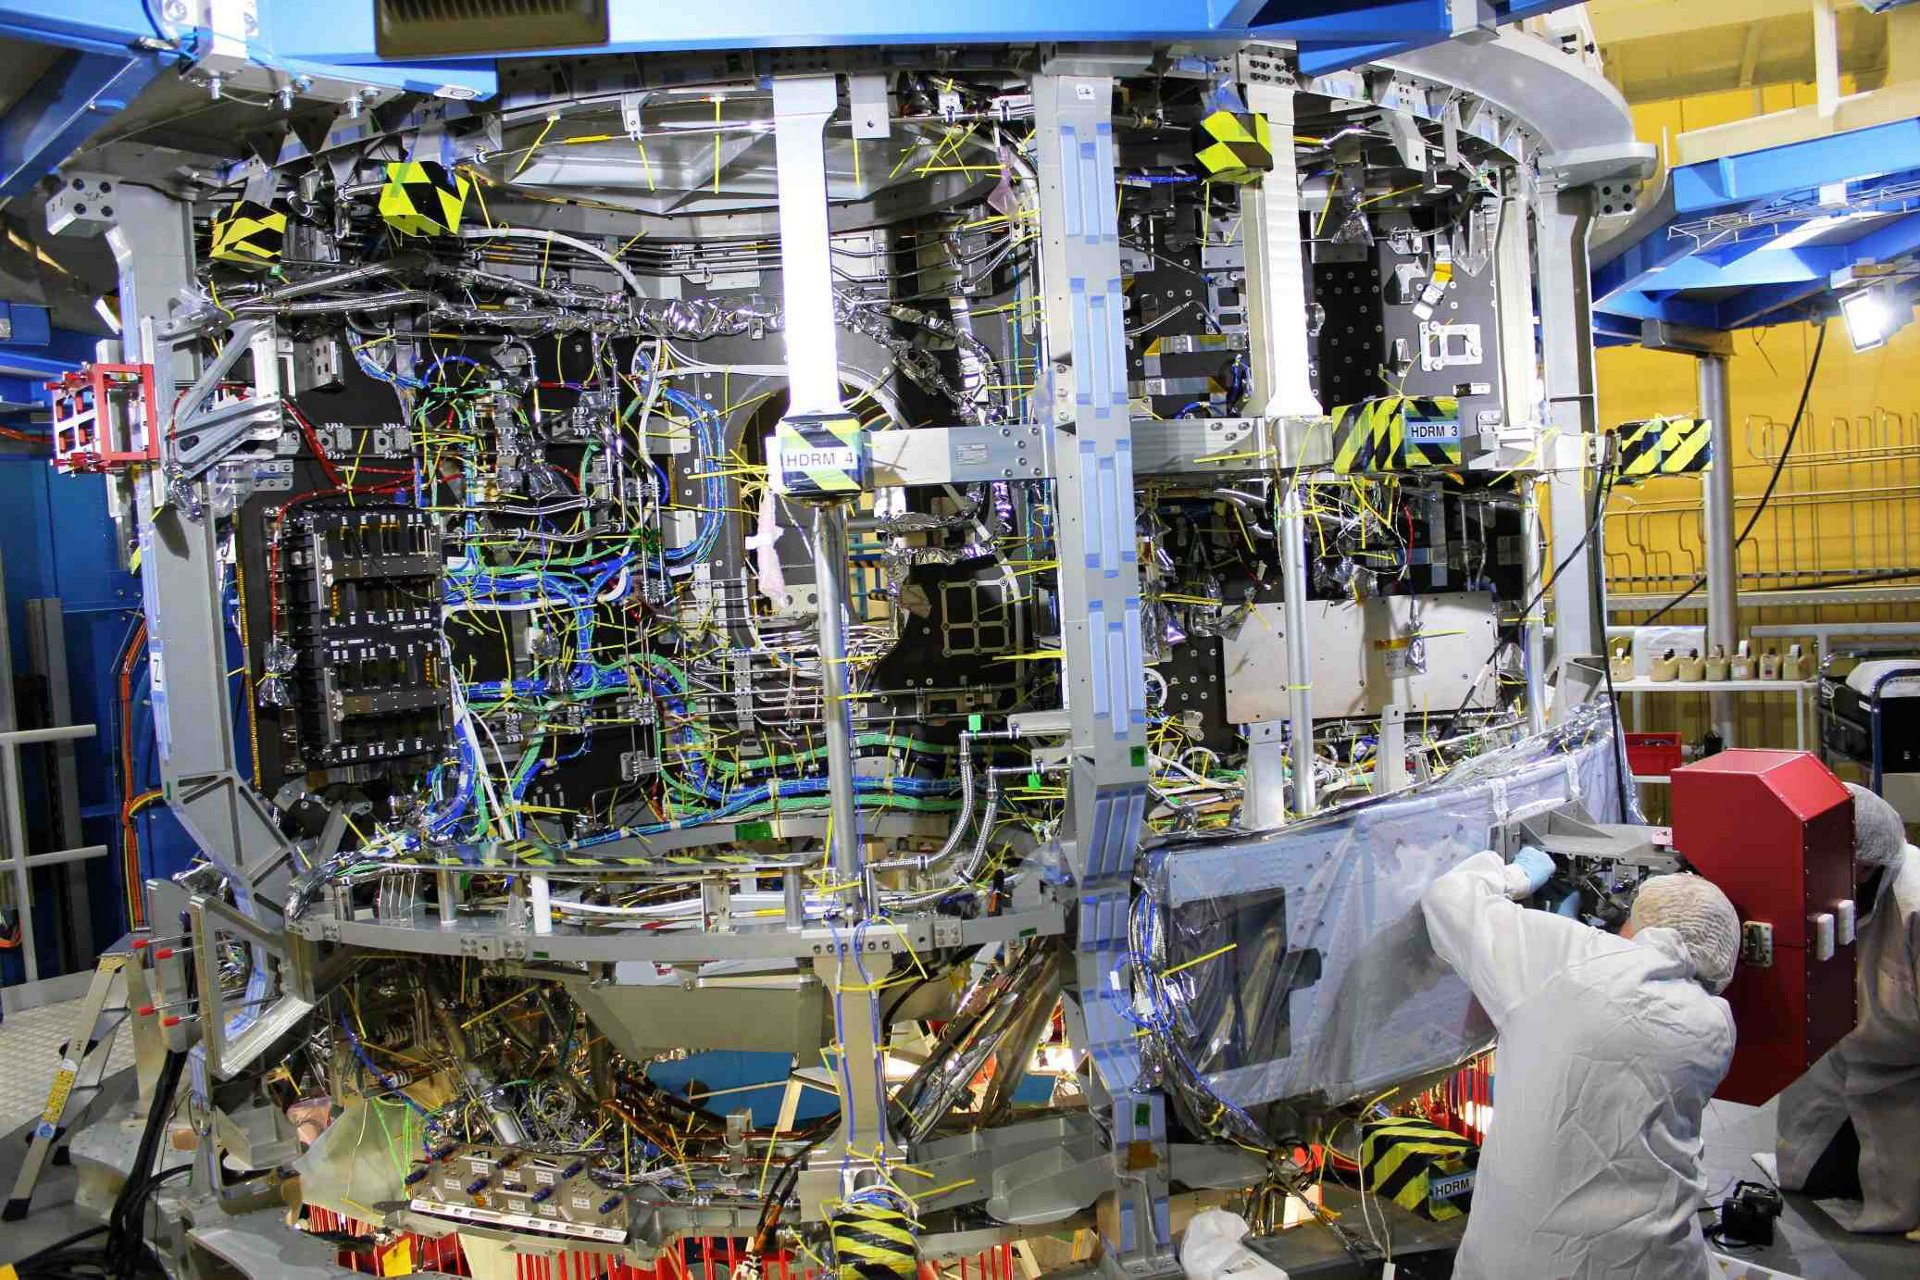 Integration of the European Service Module (ESM) for Orion, the American crewed spacecraft for the Artemis programme, at Airbus' Bremen site.